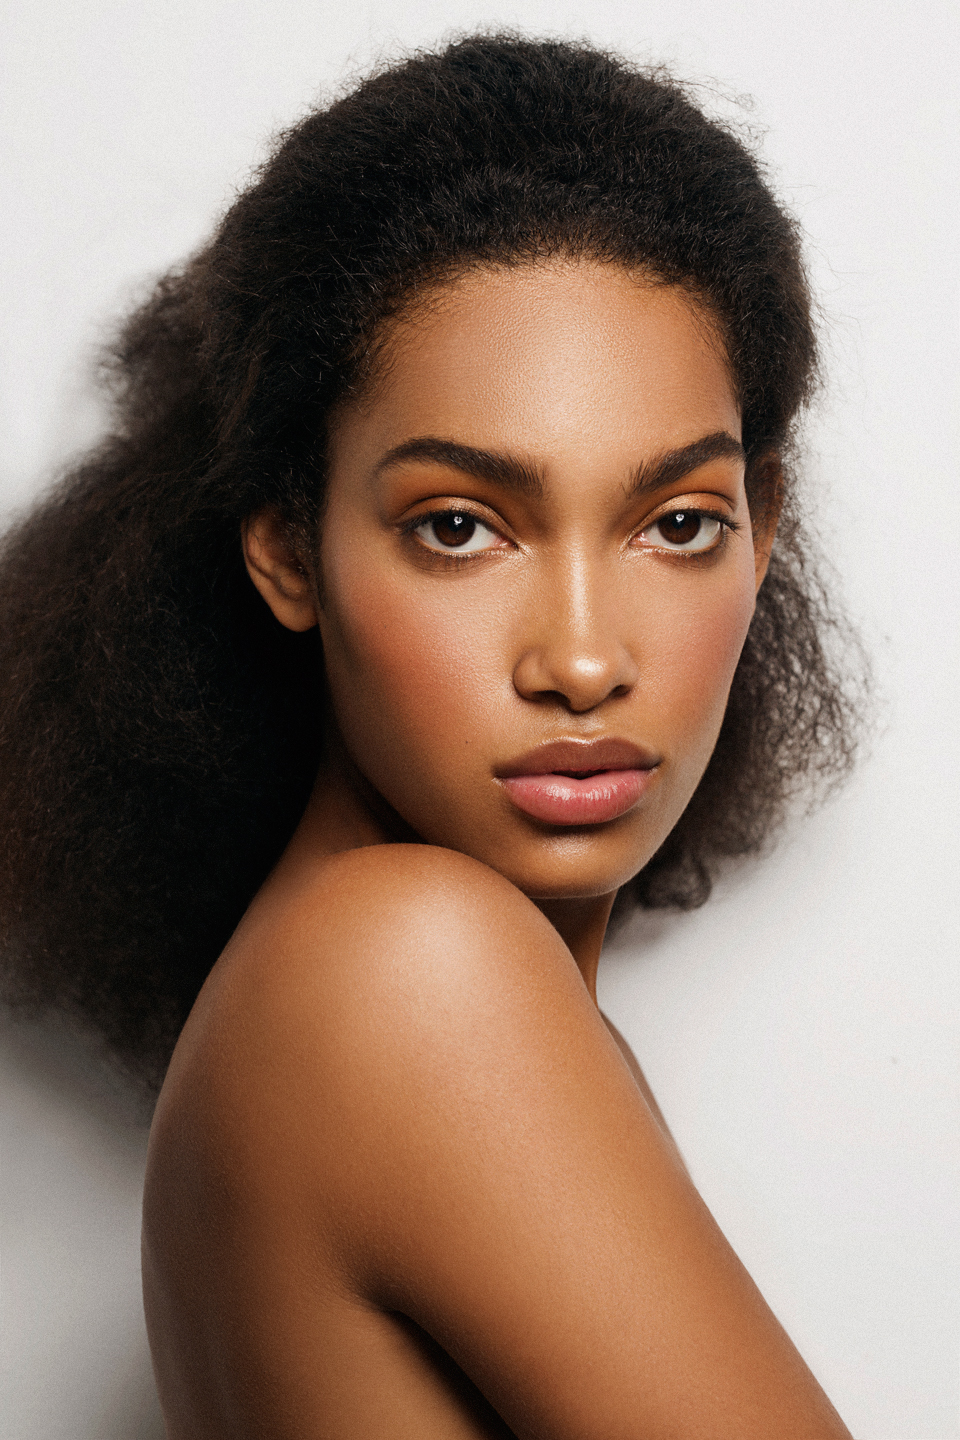 clean_beauty_black_model